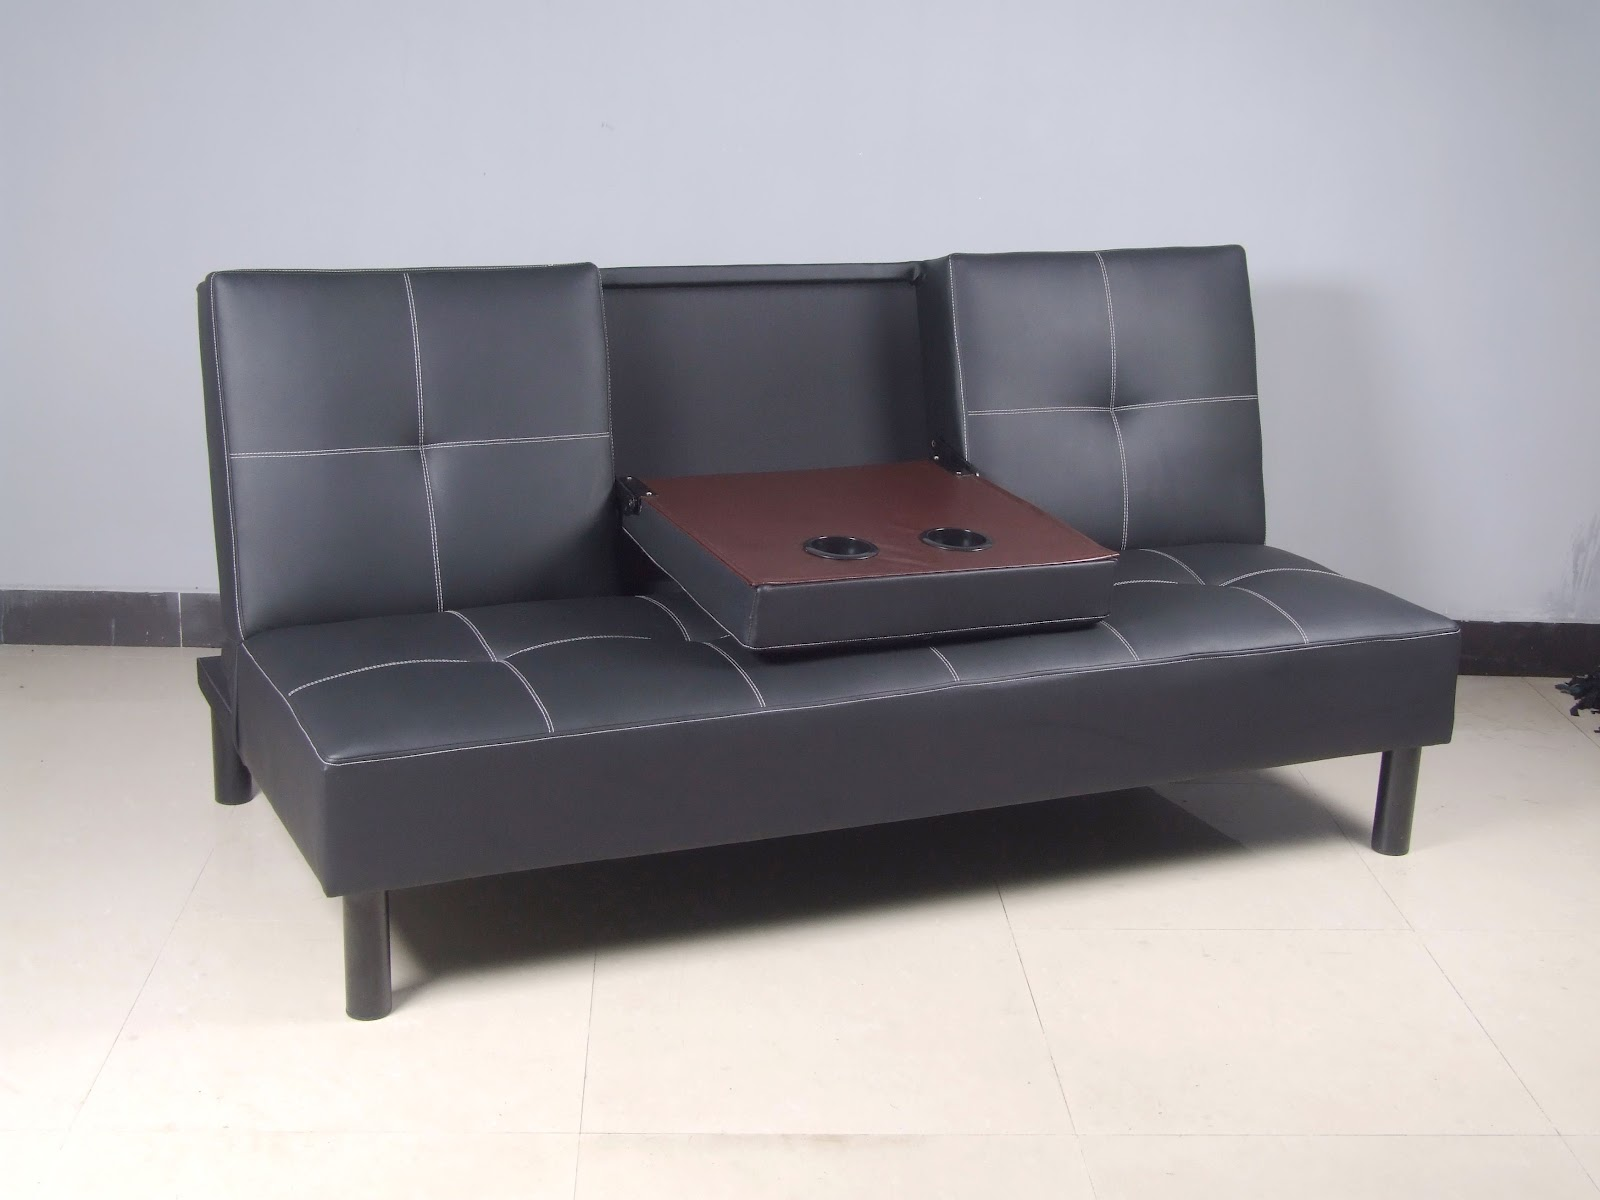 Click Clack Sofa Bed Sofa chair bed Modern Leather  : faux leather click clack sofa bed from clickclacksofabeds.blogspot.com size 1600 x 1200 jpeg 121kB